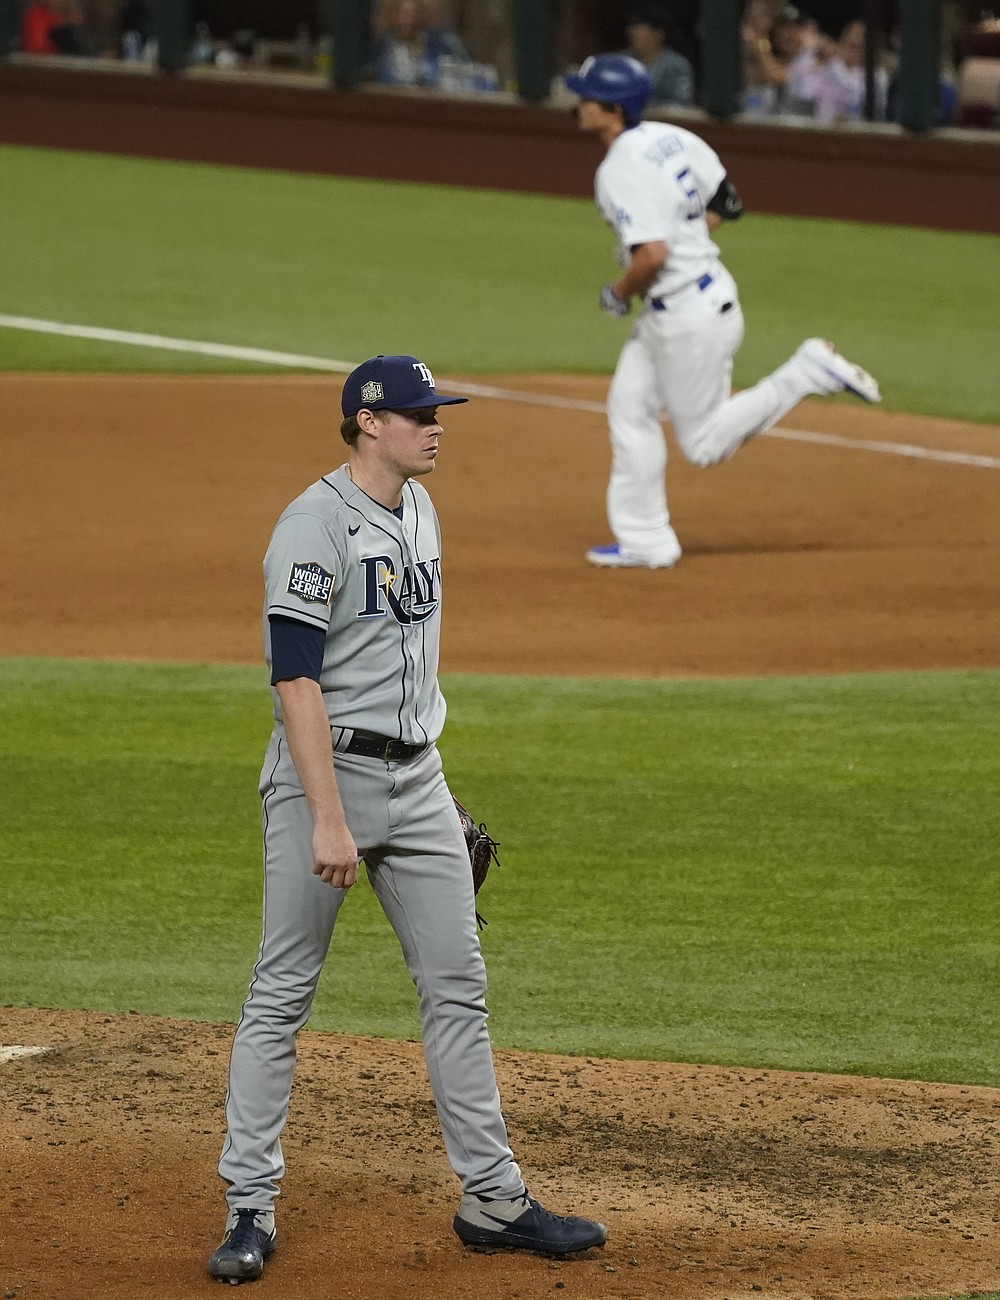 Los Angeles Dodgers' Corey Seager rounds the bases after a home run off Tampa Bay Rays relief pitcher Peter Fairbanks during the eighth inning in Game 2 of the baseball World Series Wednesday, Oct. 21, 2020, in Arlington, Texas. (AP Photo/Tony Gutierrez)